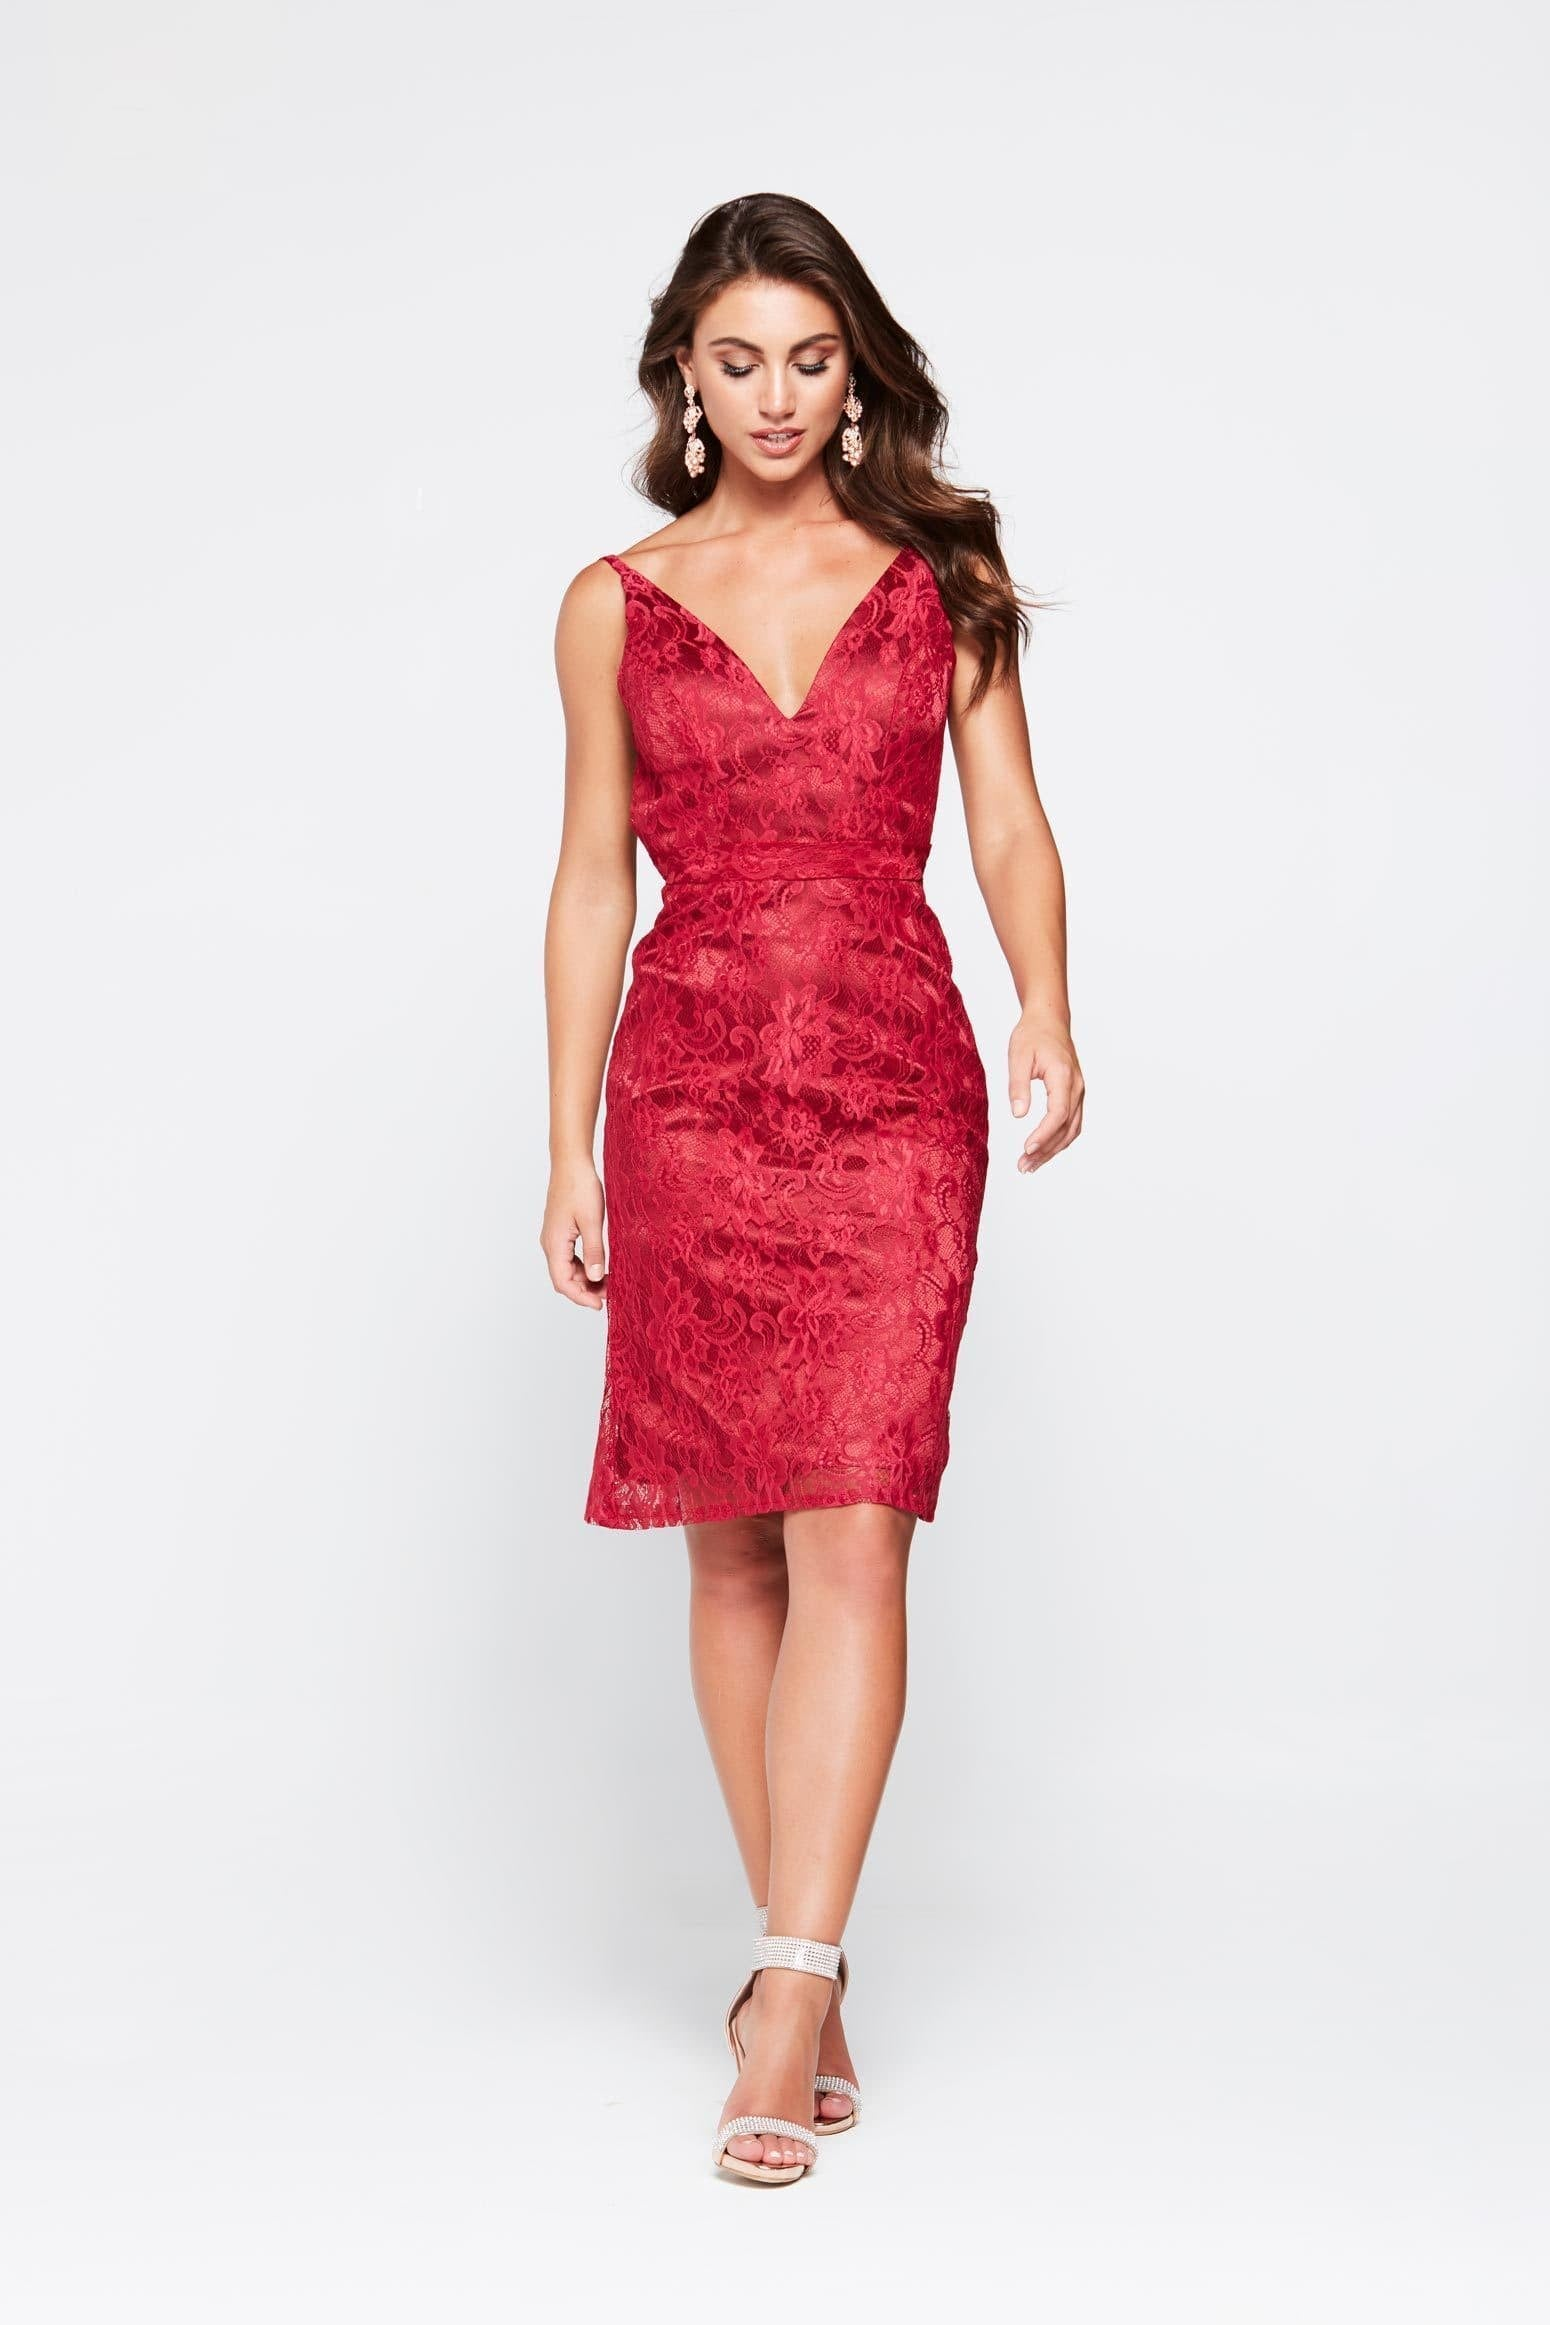 A&N Ayla Mini Cocktail Dress - Red Lace with Low Back